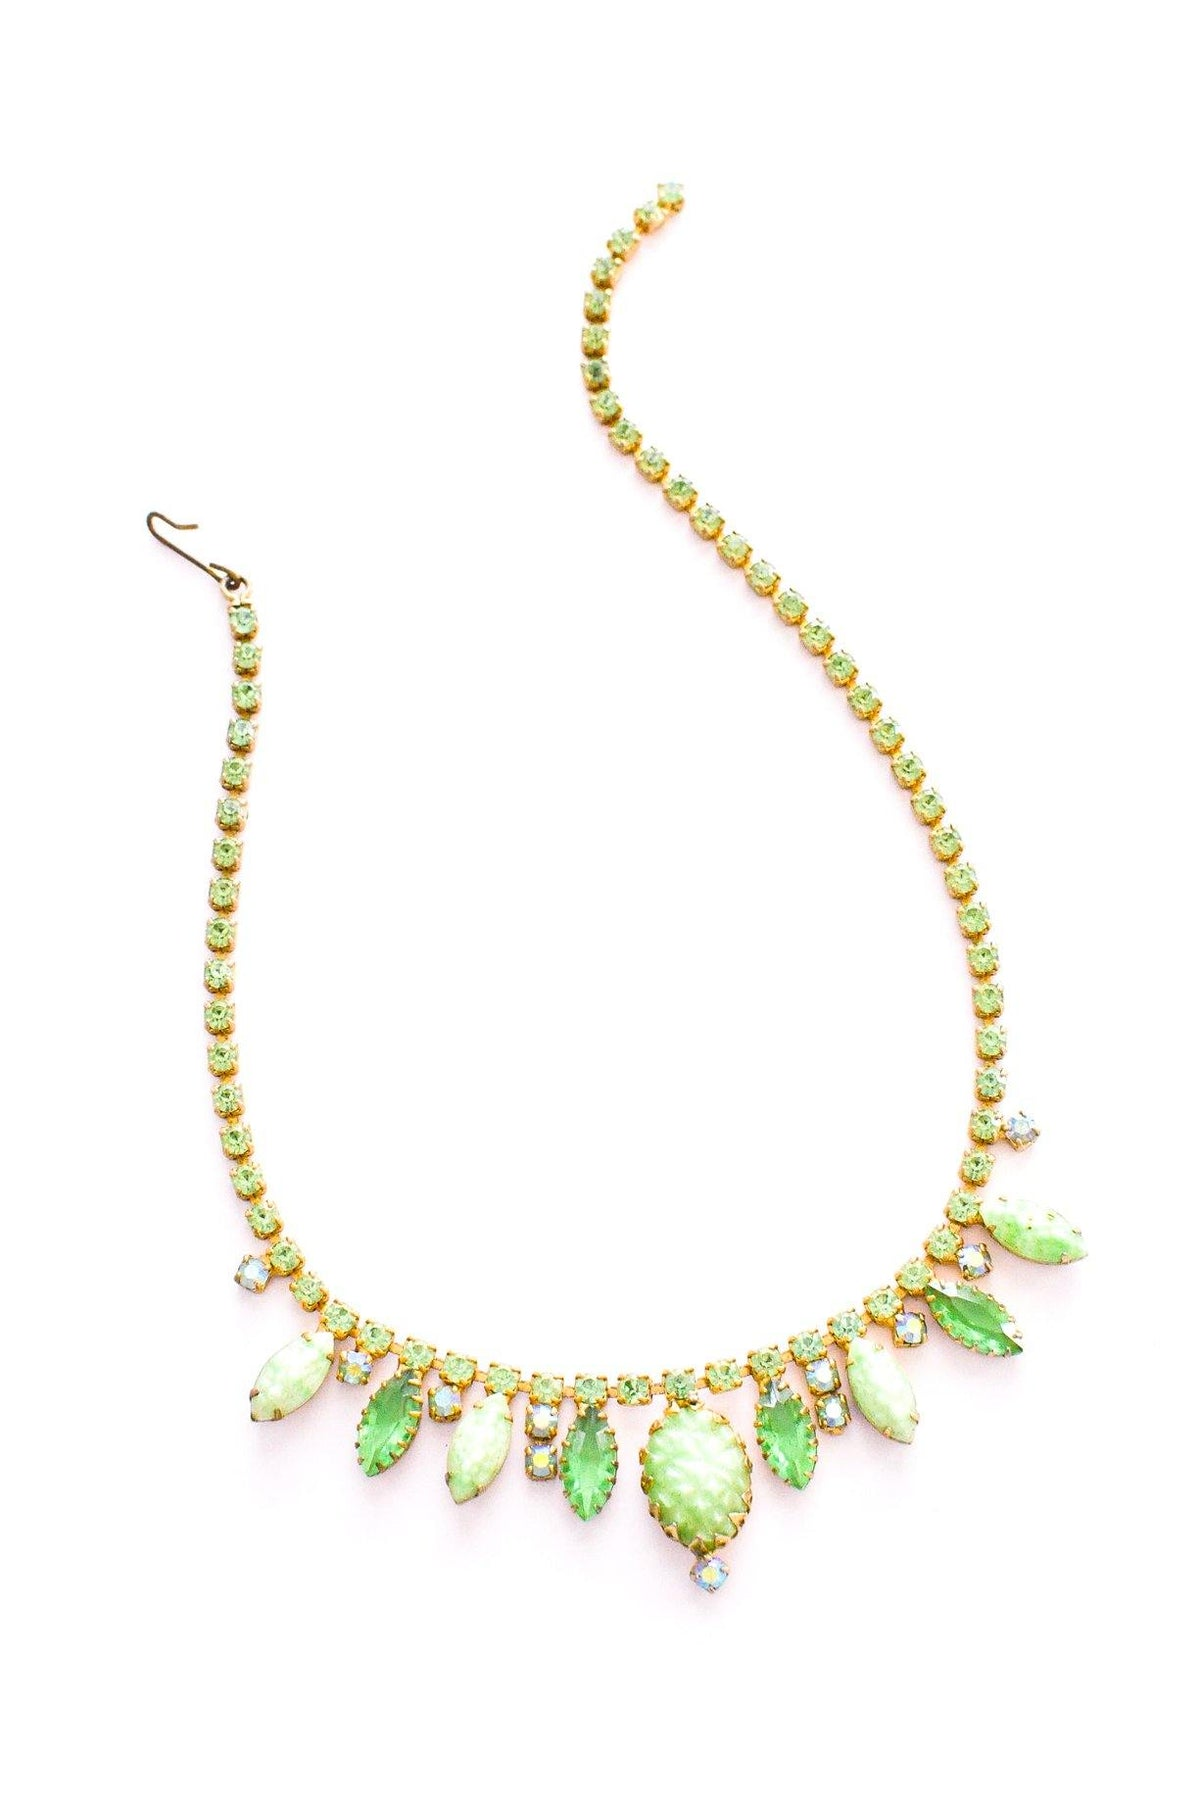 Vintage green rhinestone statement necklace from Sweet & Spark.